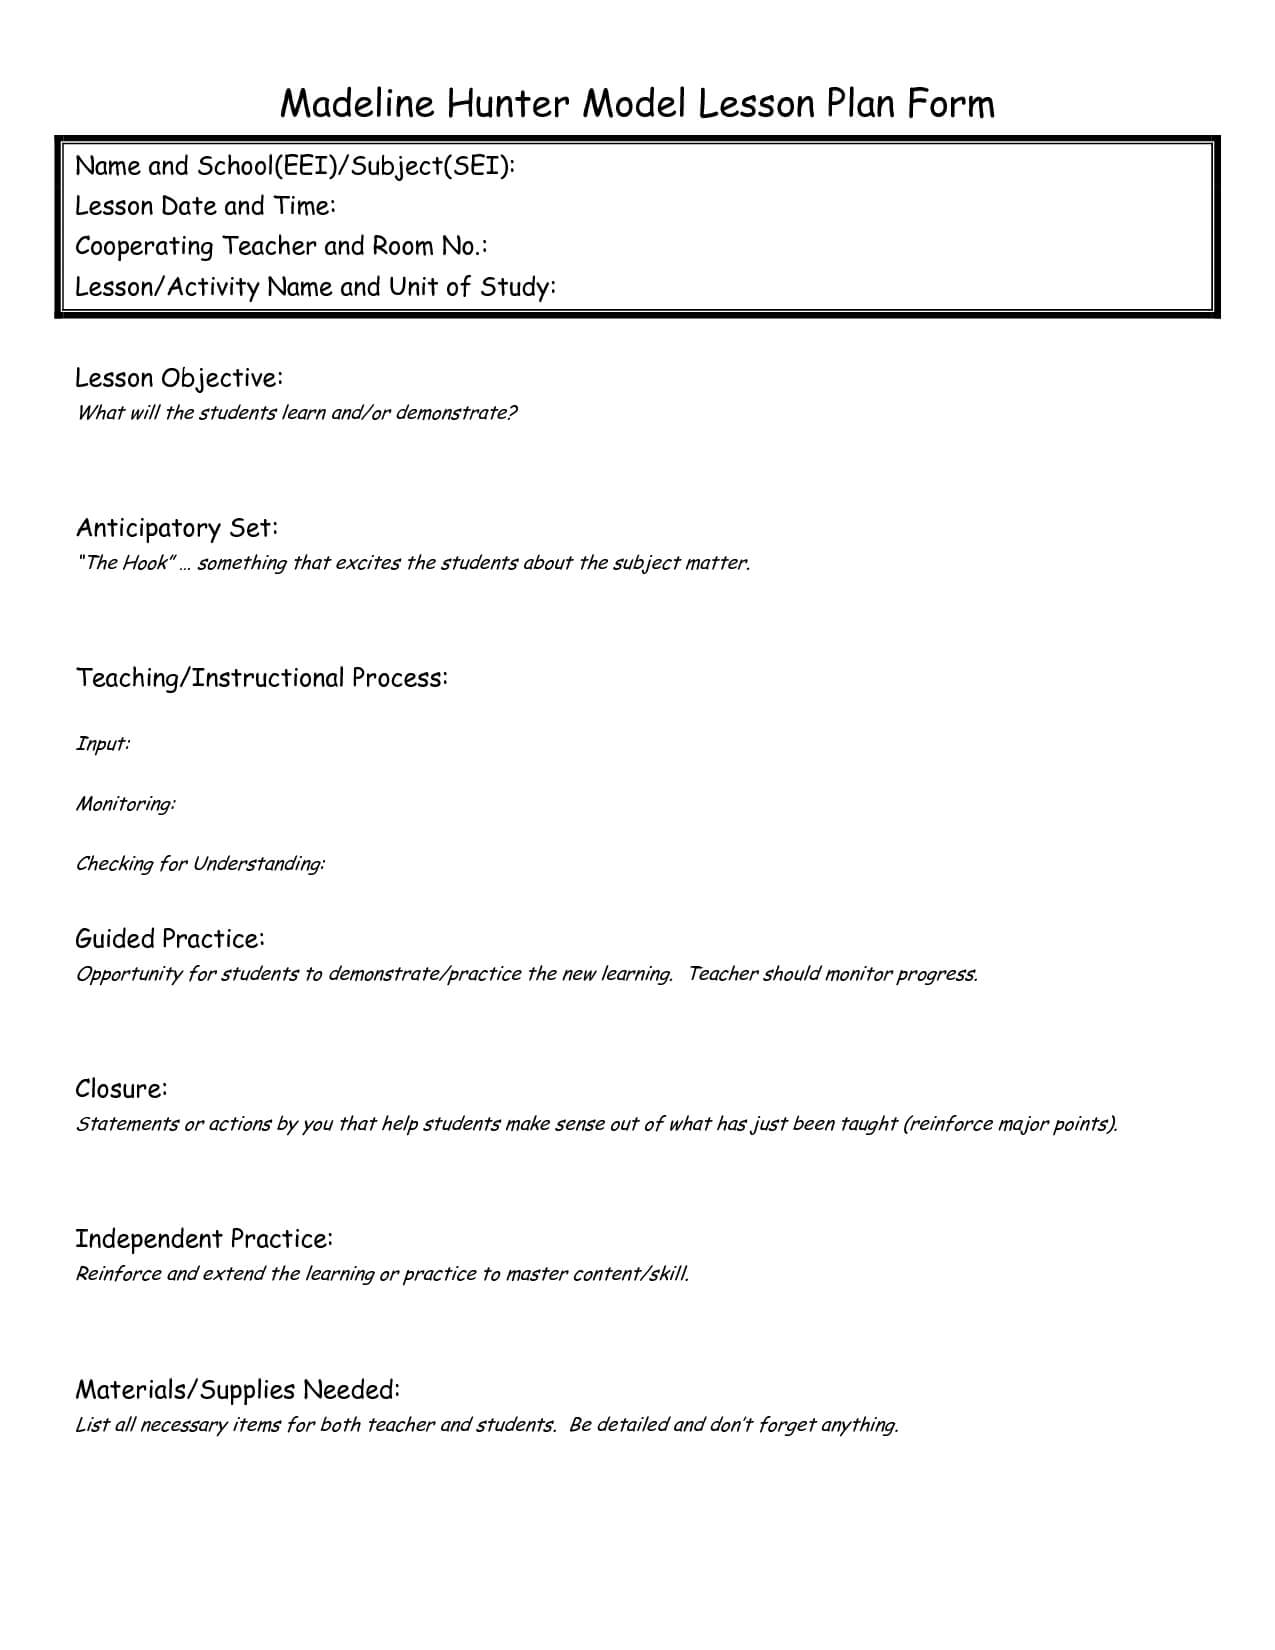 Eei Lesson Plan | Madeline Hunter Lesson Plan, Lesson Plan Pertaining To Madeline Hunter Lesson Plan Template Word